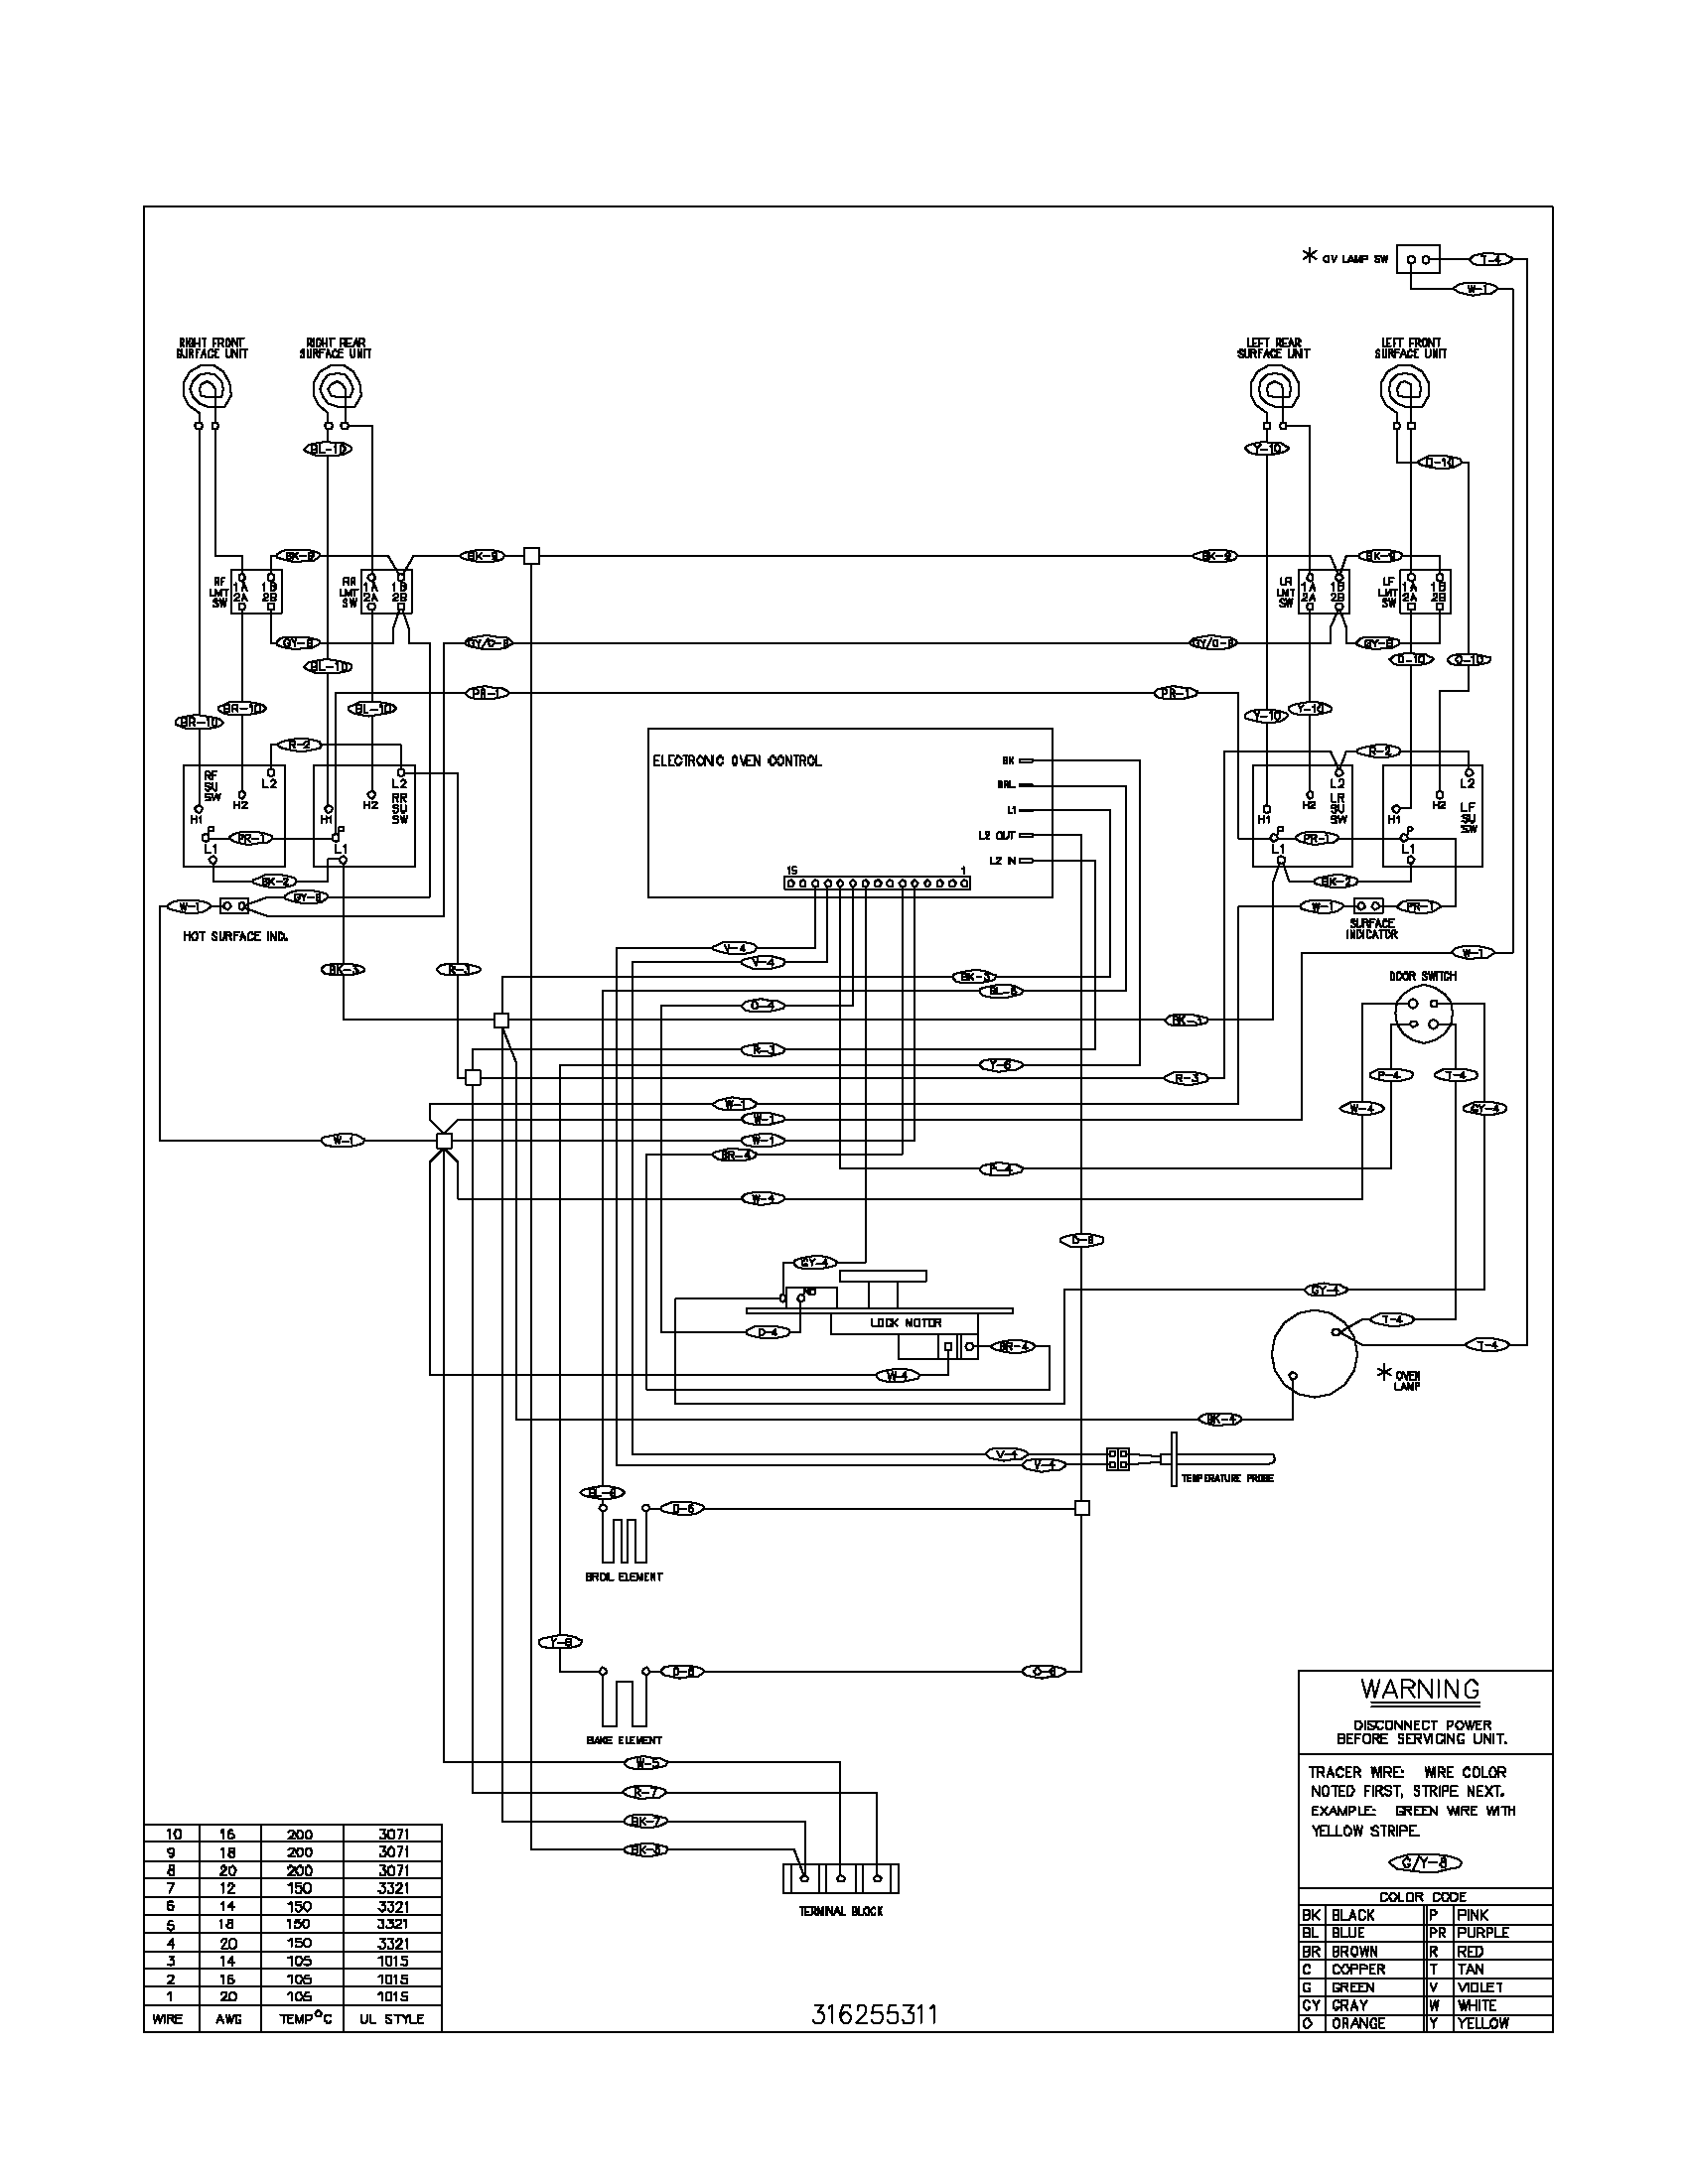 Oven Range Wiring Diagram Wiring Diagram - CHESSIE.MOOSHAK.INMOOSHAK.IN